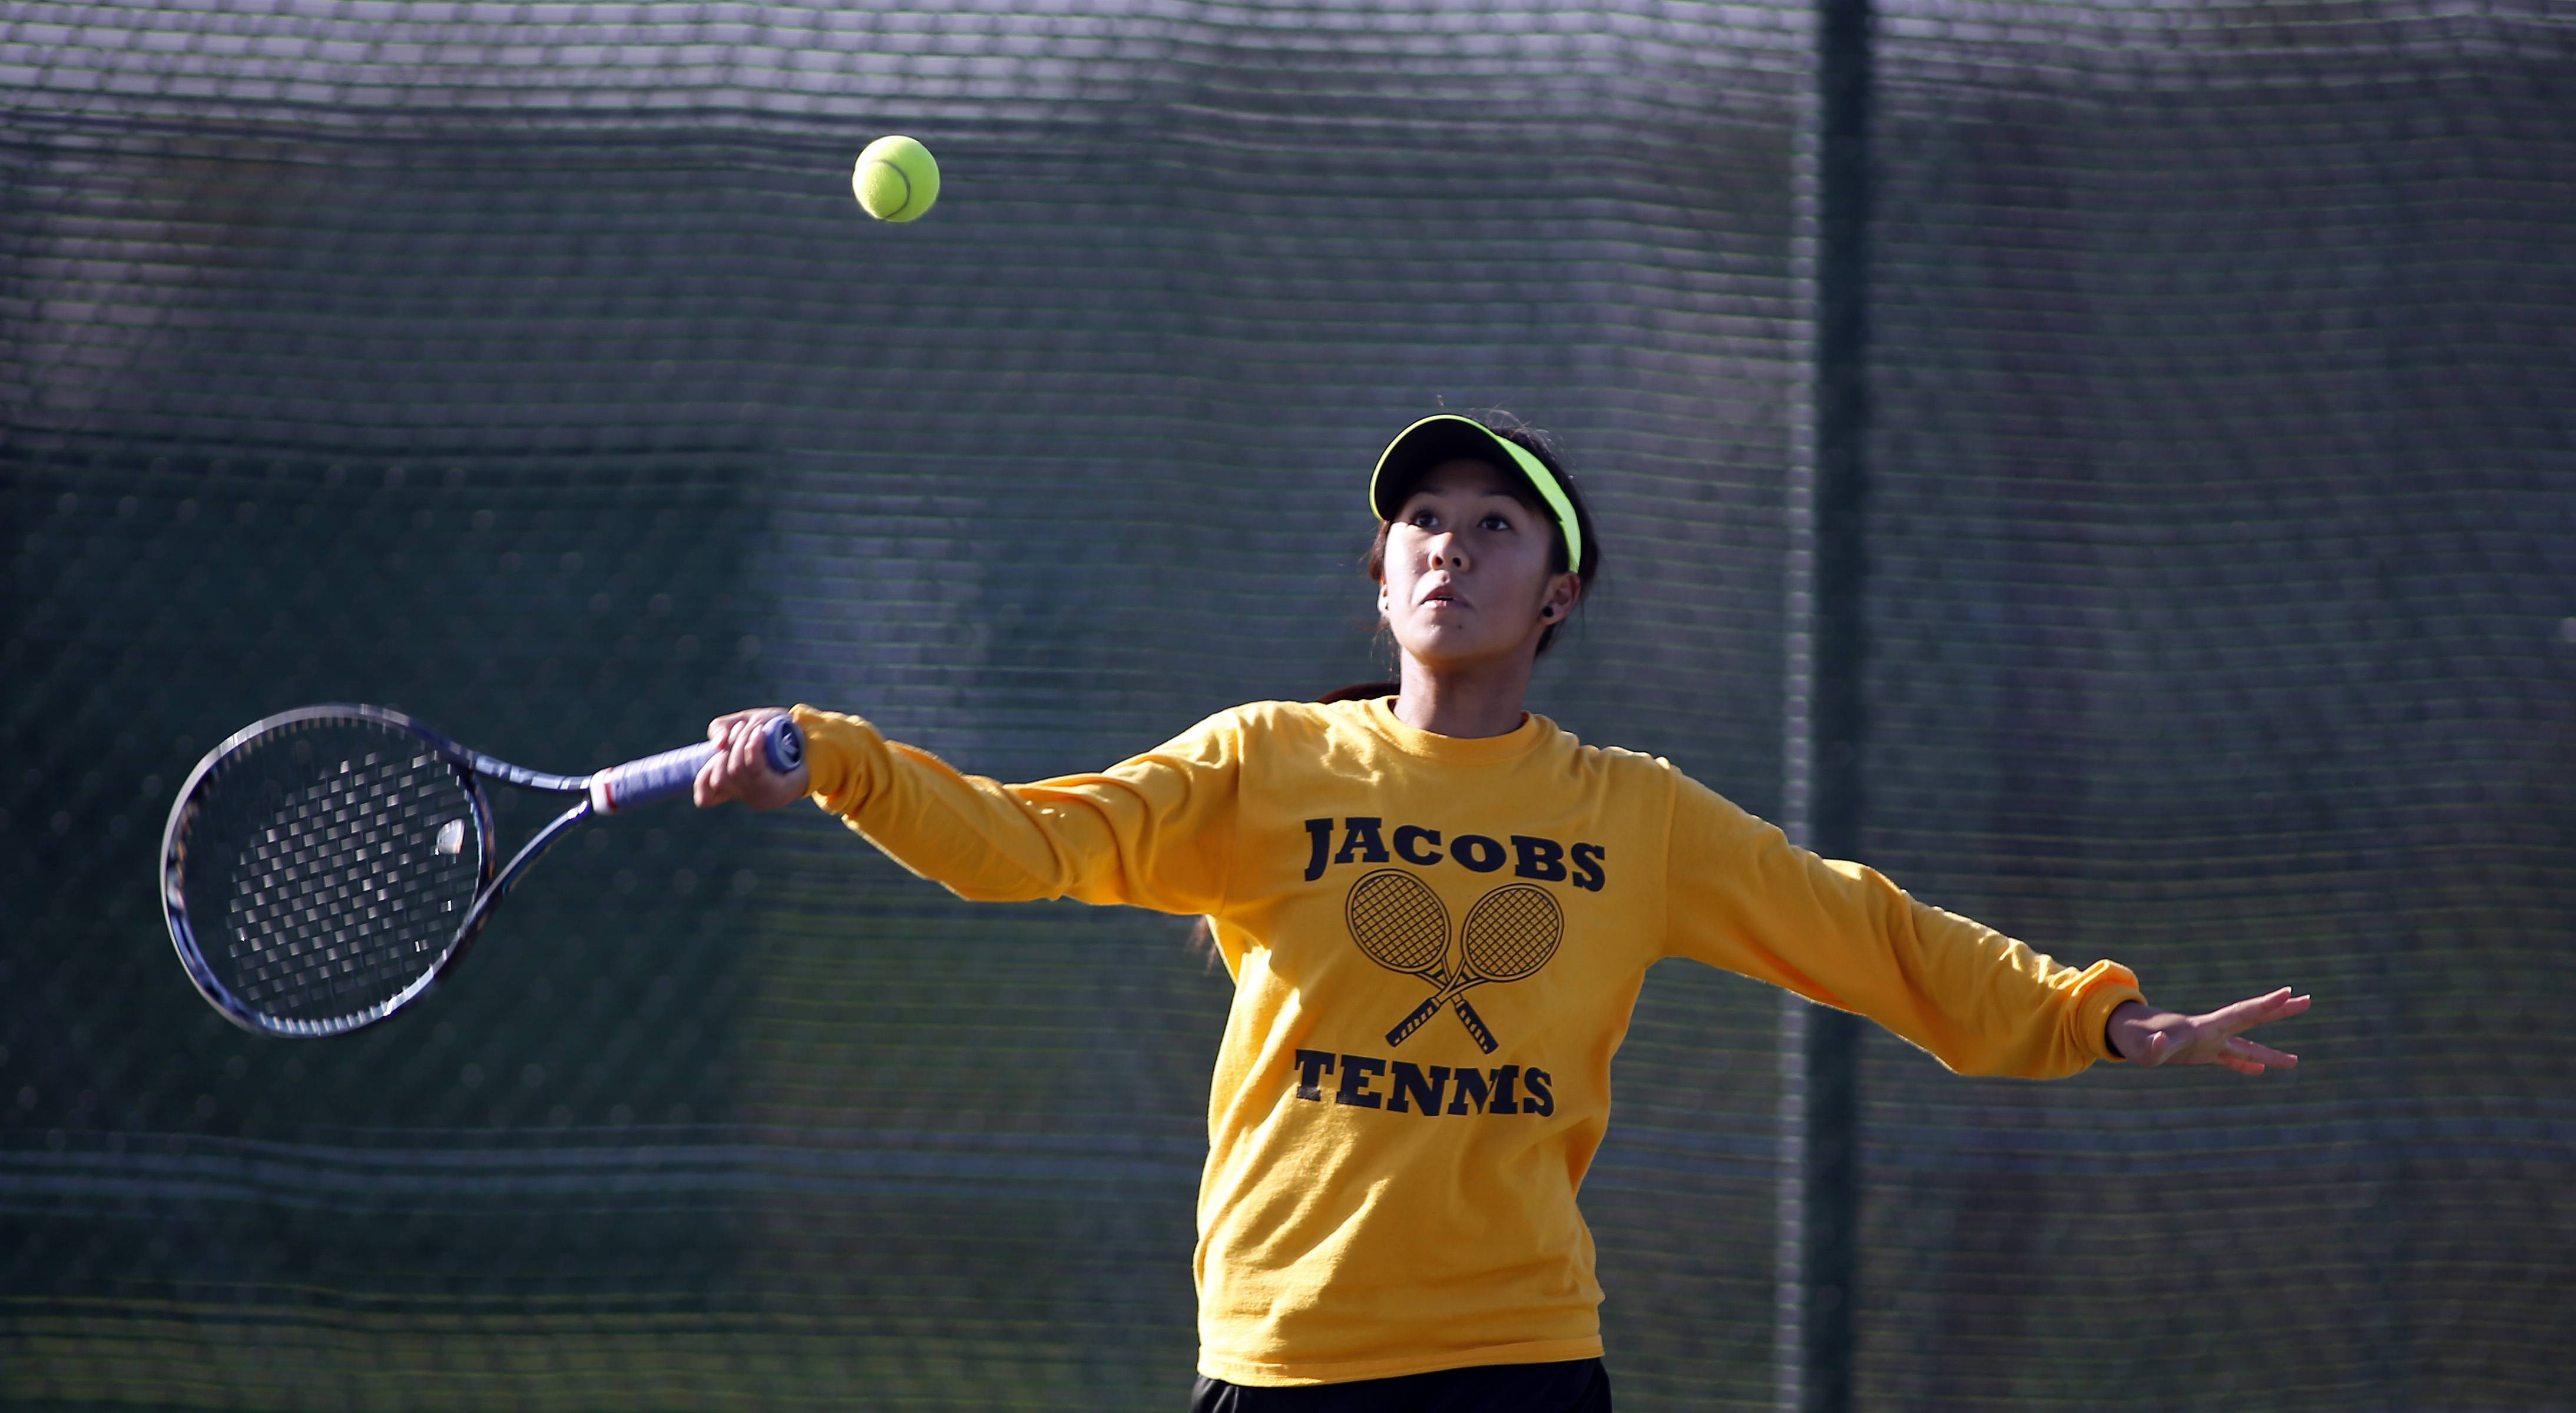 Jacobs' Ashley Kosy returns a volley during the Huntley girls tennis sectional last season.